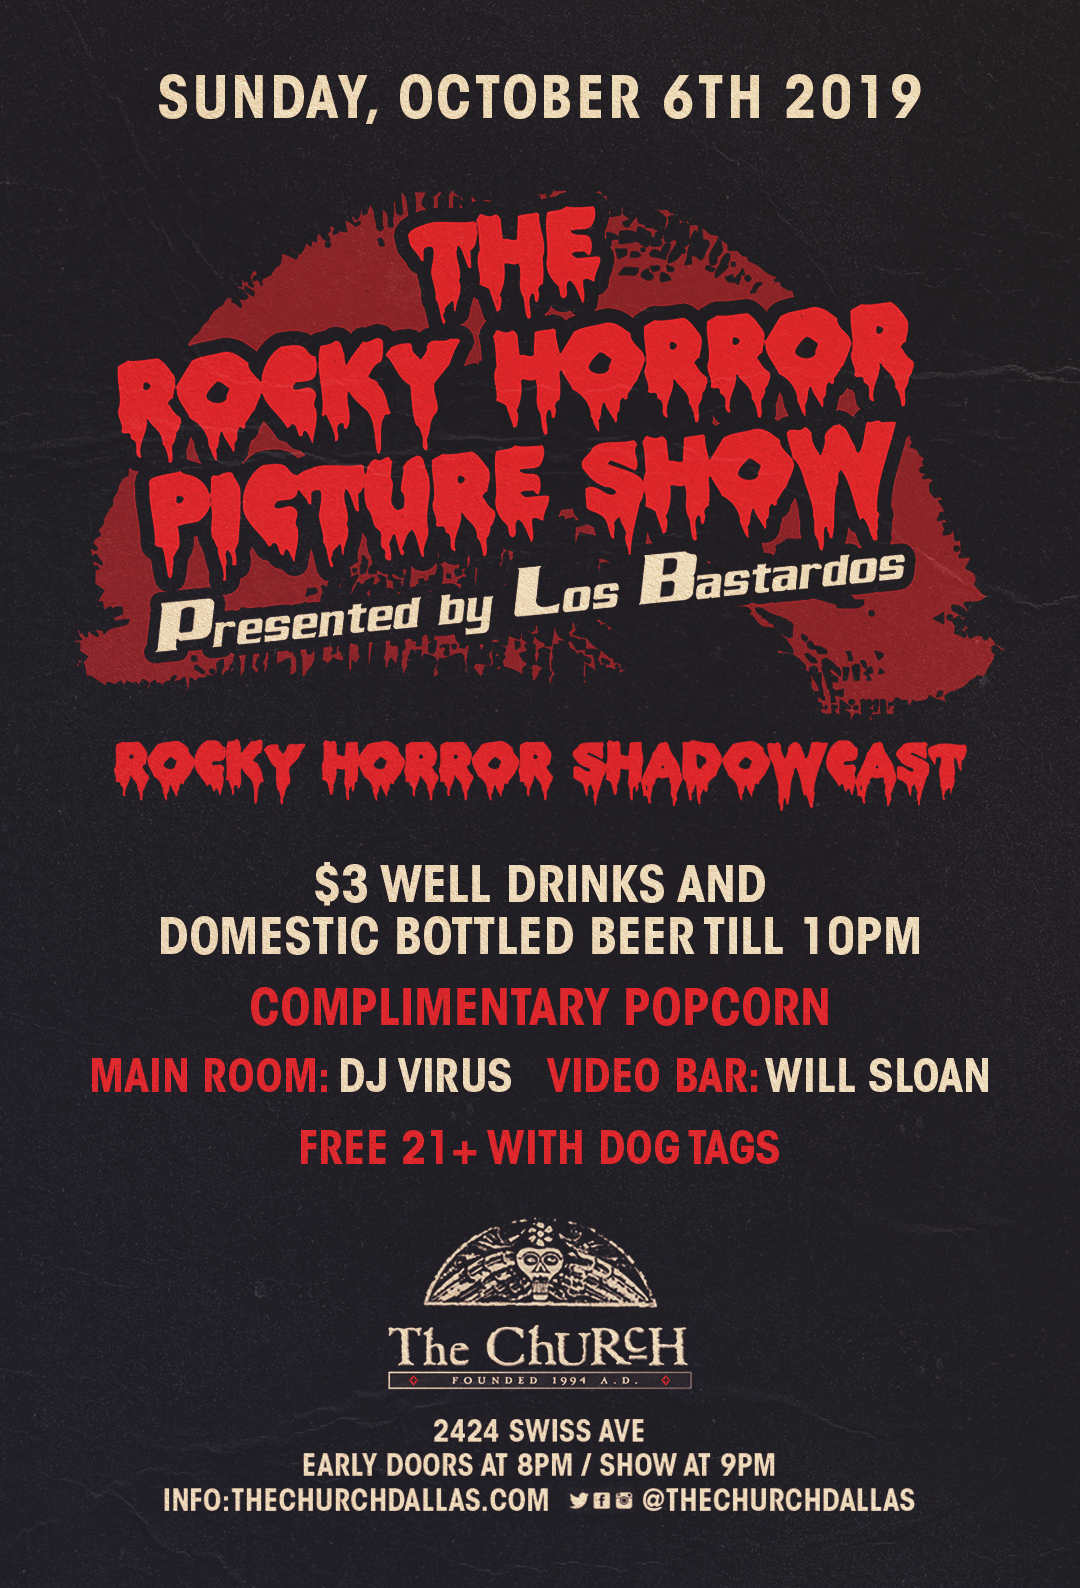 08.19.2018 - The Rocky Horror Picture Show with Los Bastardos